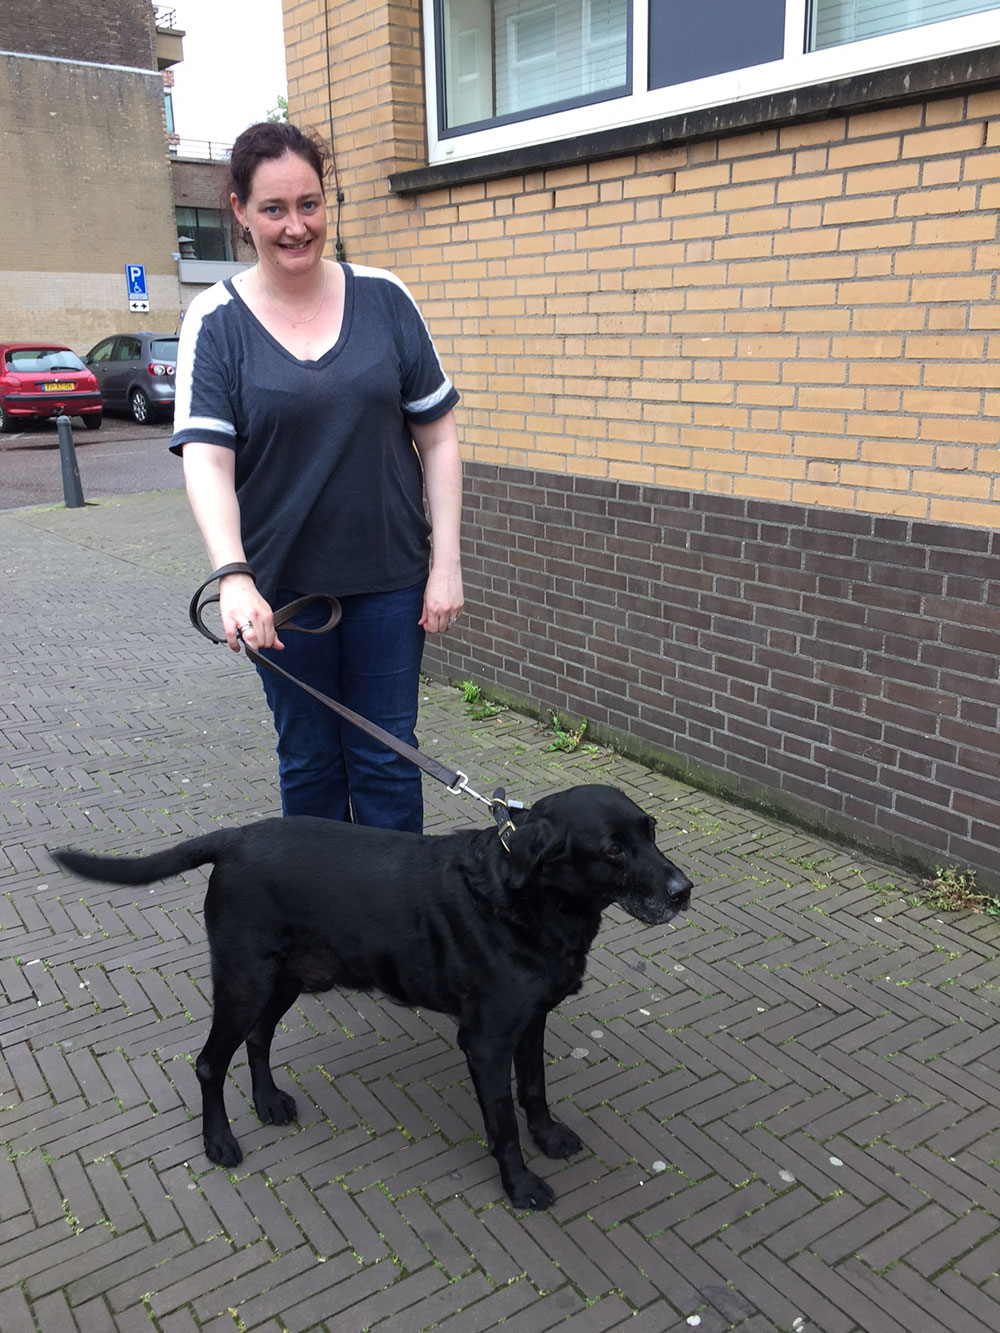 Gorgeous Jack reunited with Charlotte in Den Haag